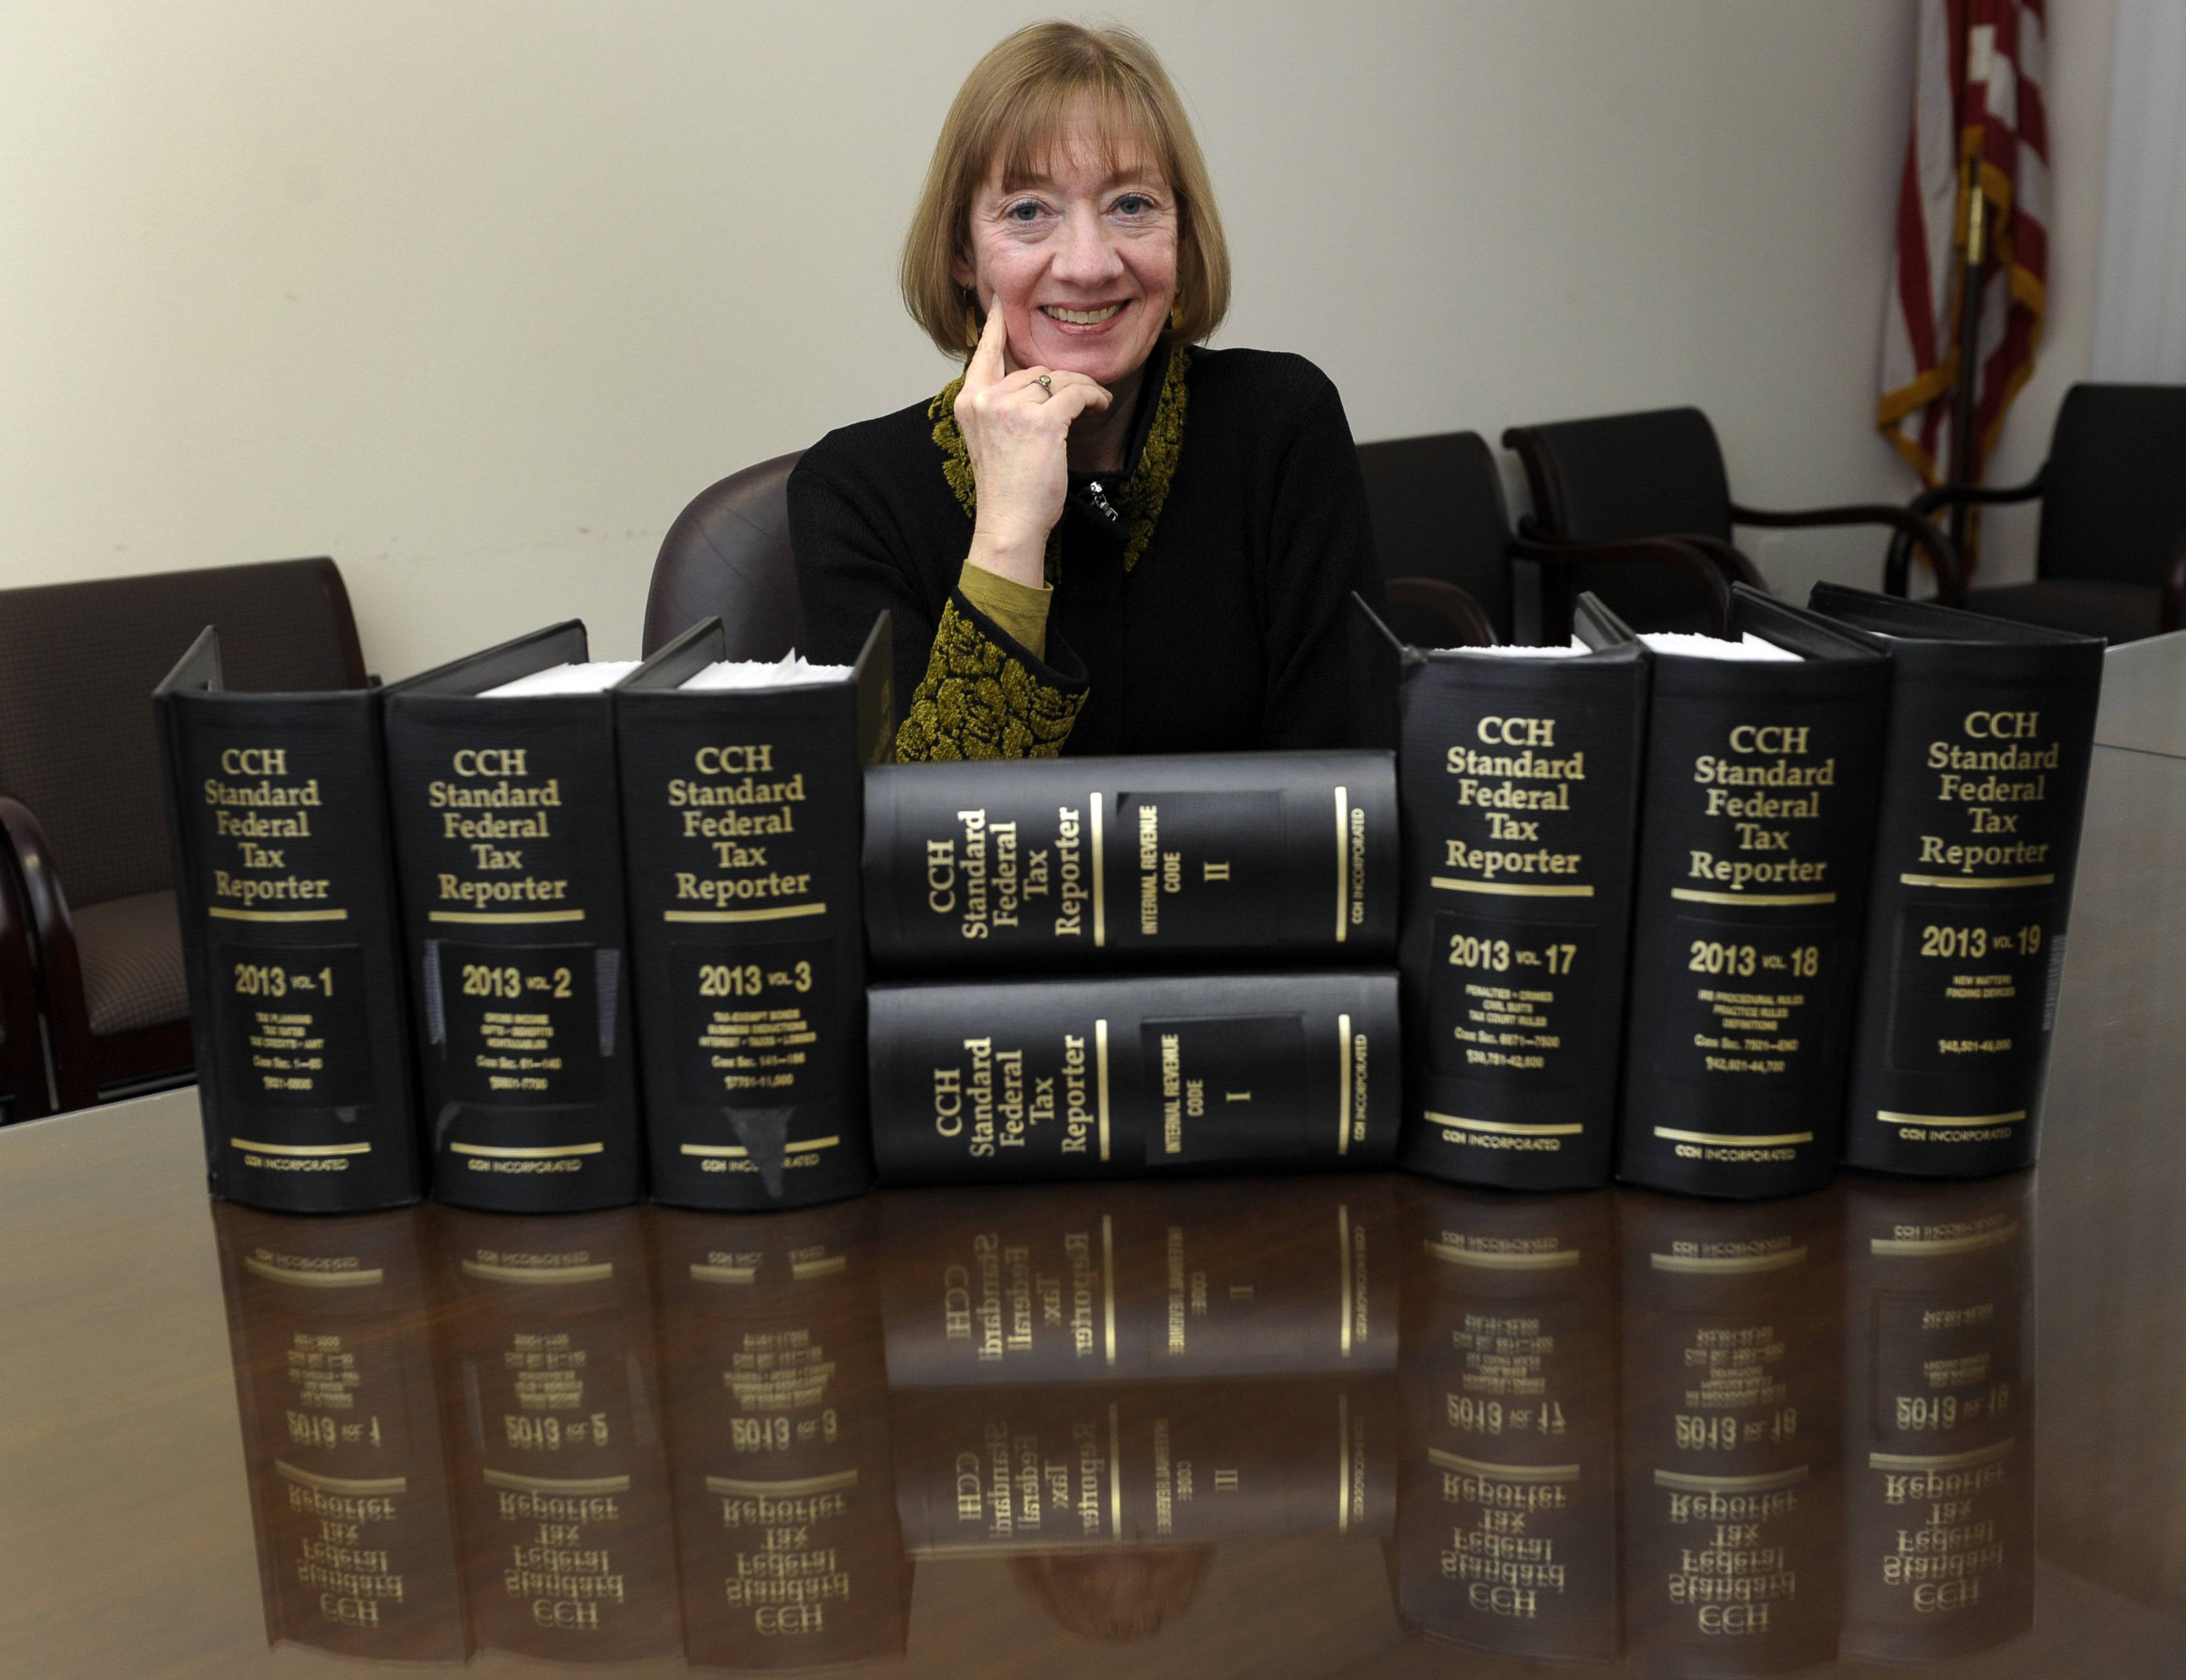 "National Taxpayer Advocate Nina Olson poses with tax code books at the Internal Revenue Service in Washington. Olson says it's not too early to start thinking about the tax implications of health care reform. ""We have an opportunity in the 2014 filing season to educate taxpayers about what they need to do during the year to avoid problems during the 2015 filing season,"" Olson said in a wide-ranging interview."